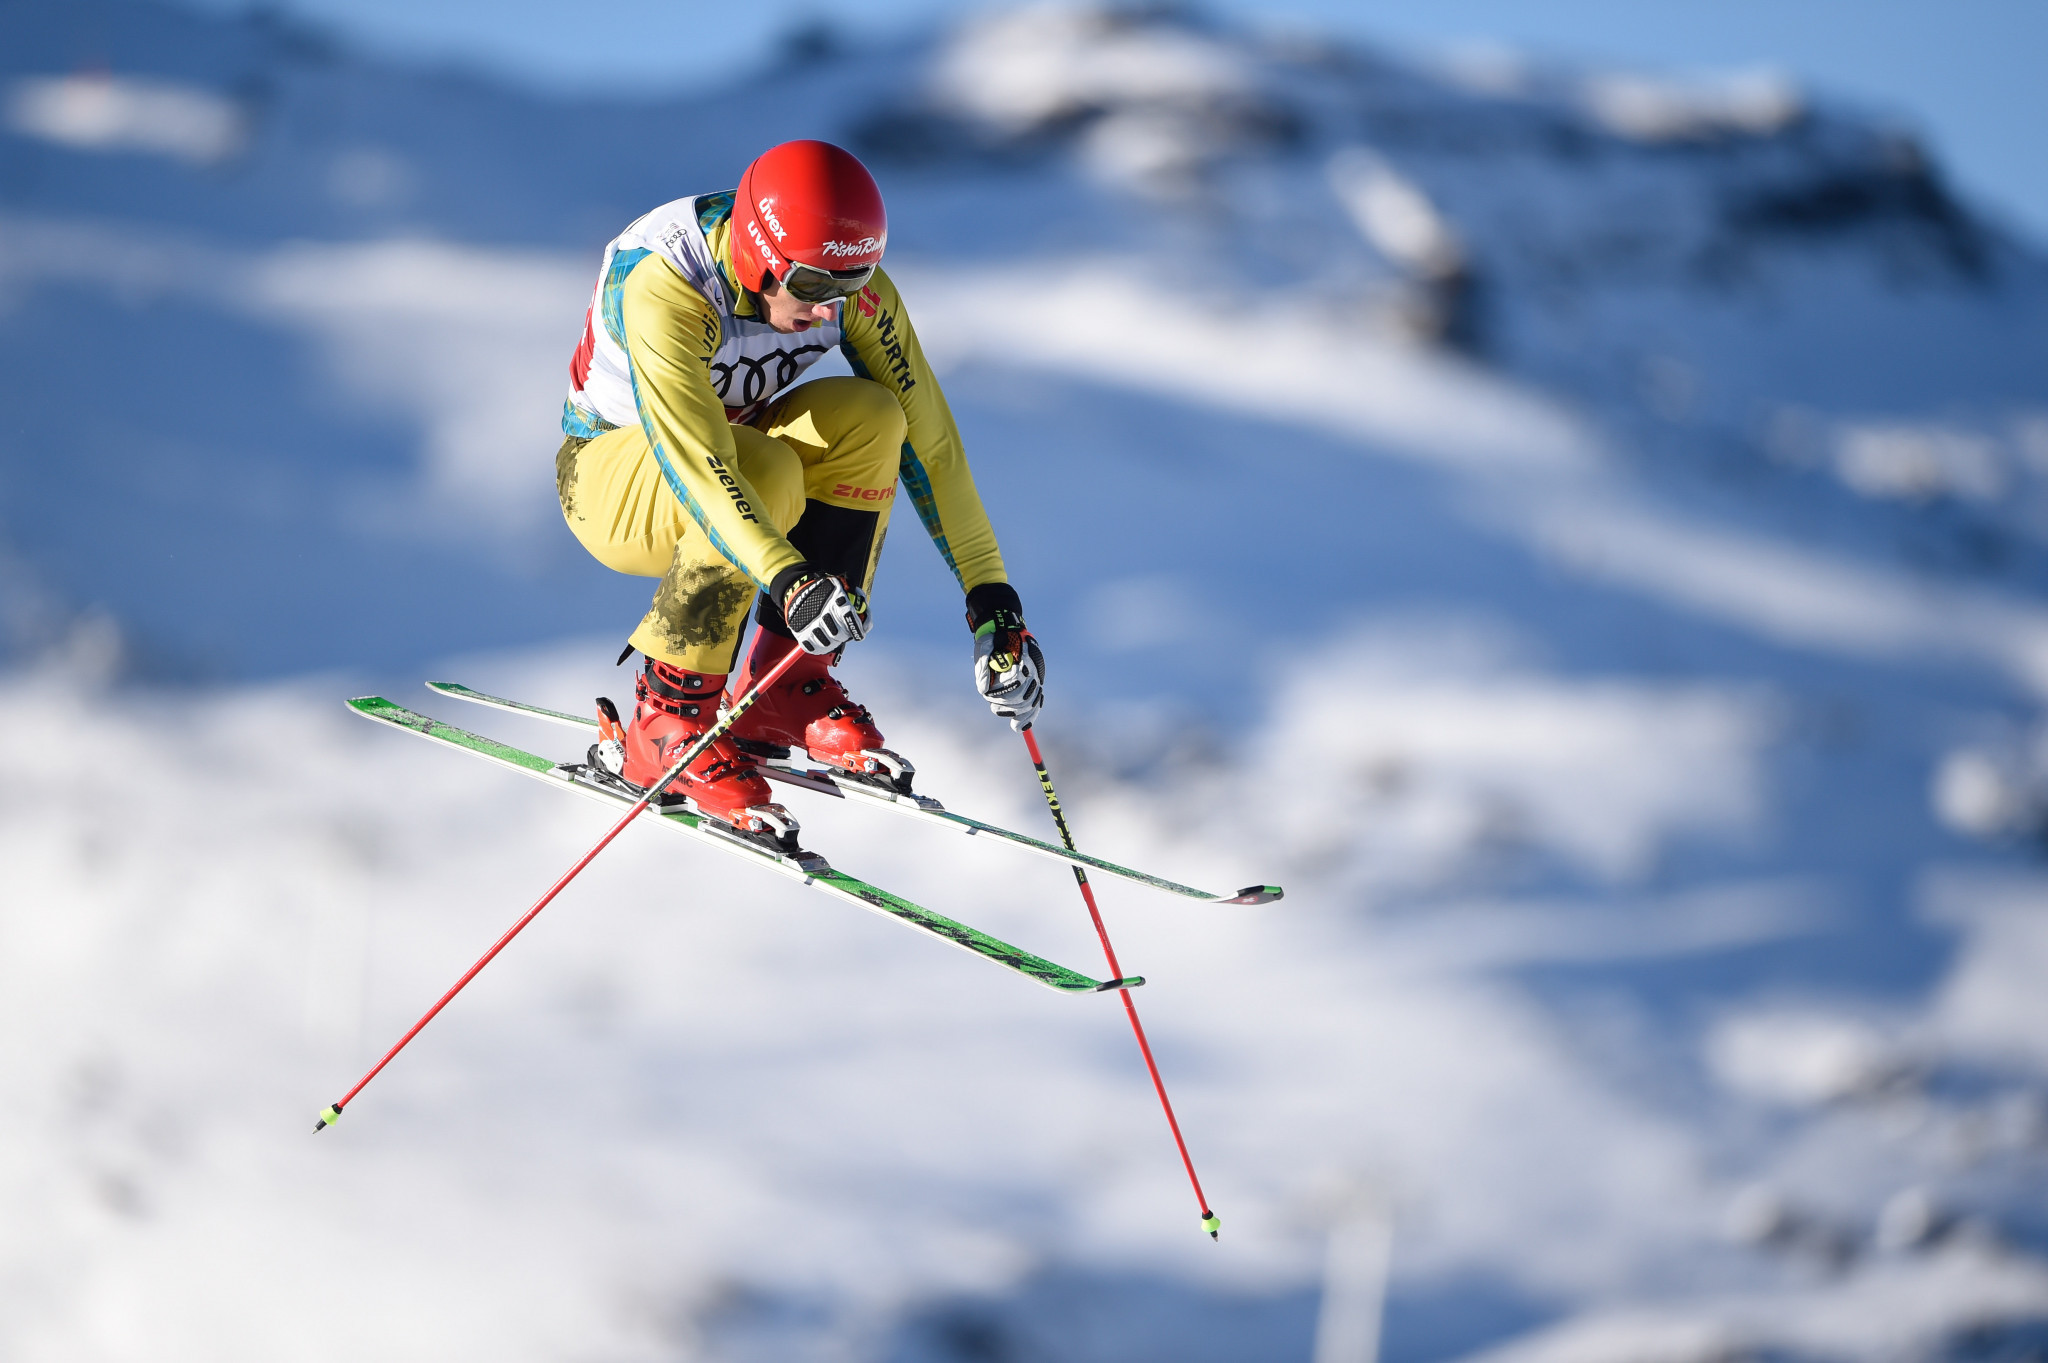 Bohnacker records first FIS Ski Cross World Cup win in nine years